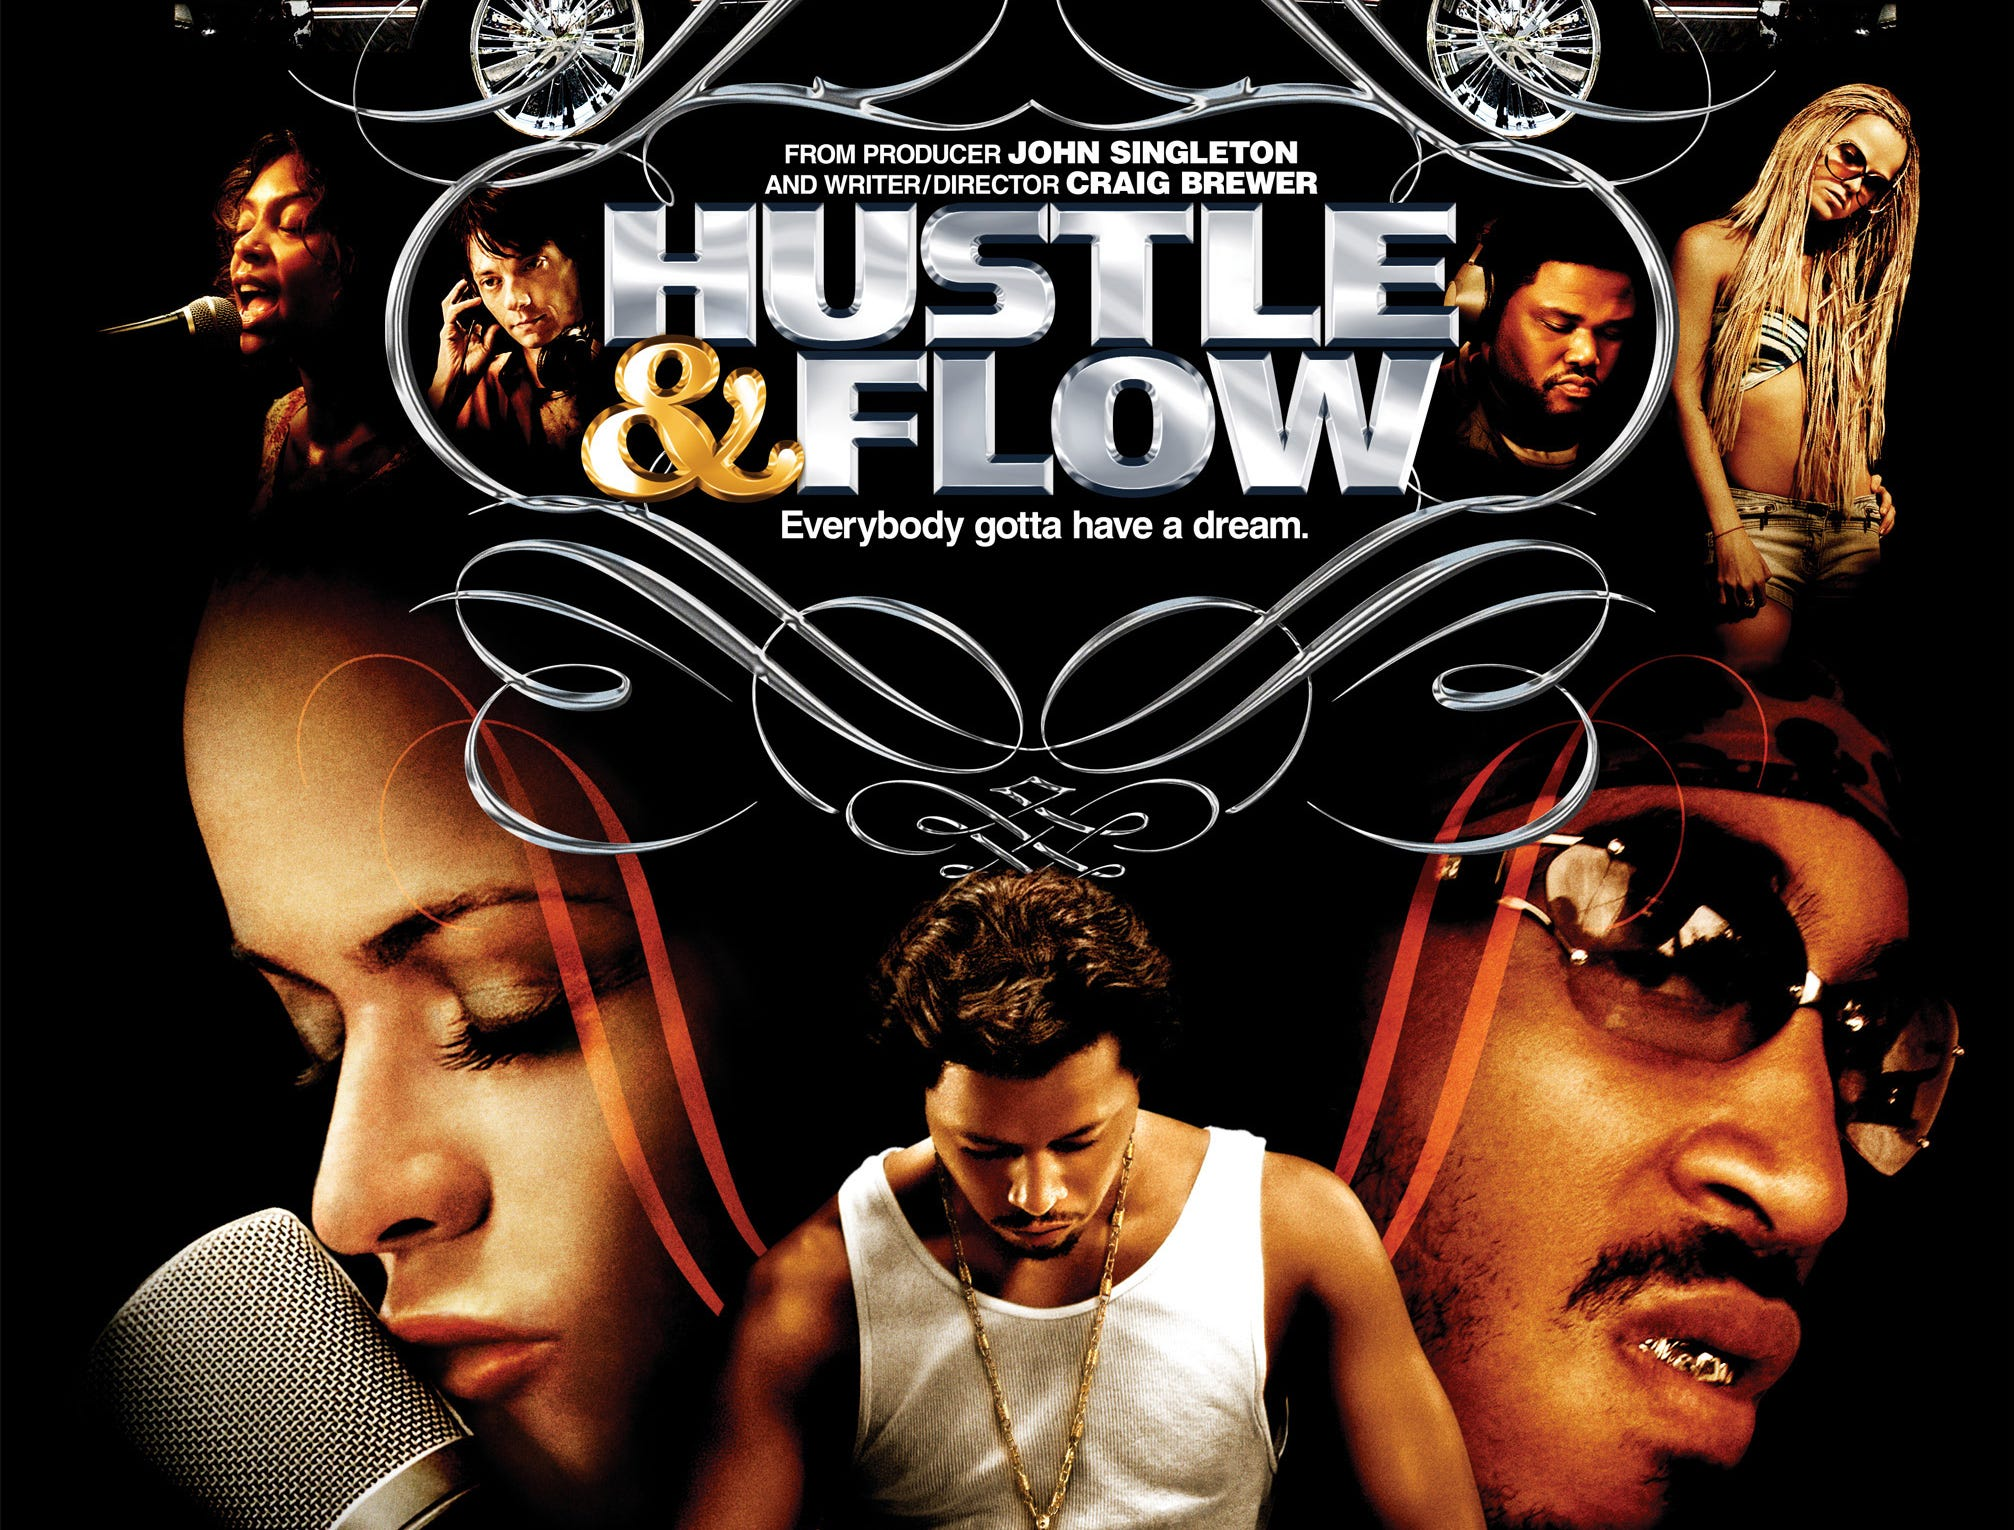 """Hustle & Flow"" (2005) - Terrence Howard stars as a pimp in Memphis who becomes a hip hop DJ. The movie also stars Ludacris and Anthony Anderson and received one Oscar for original song."